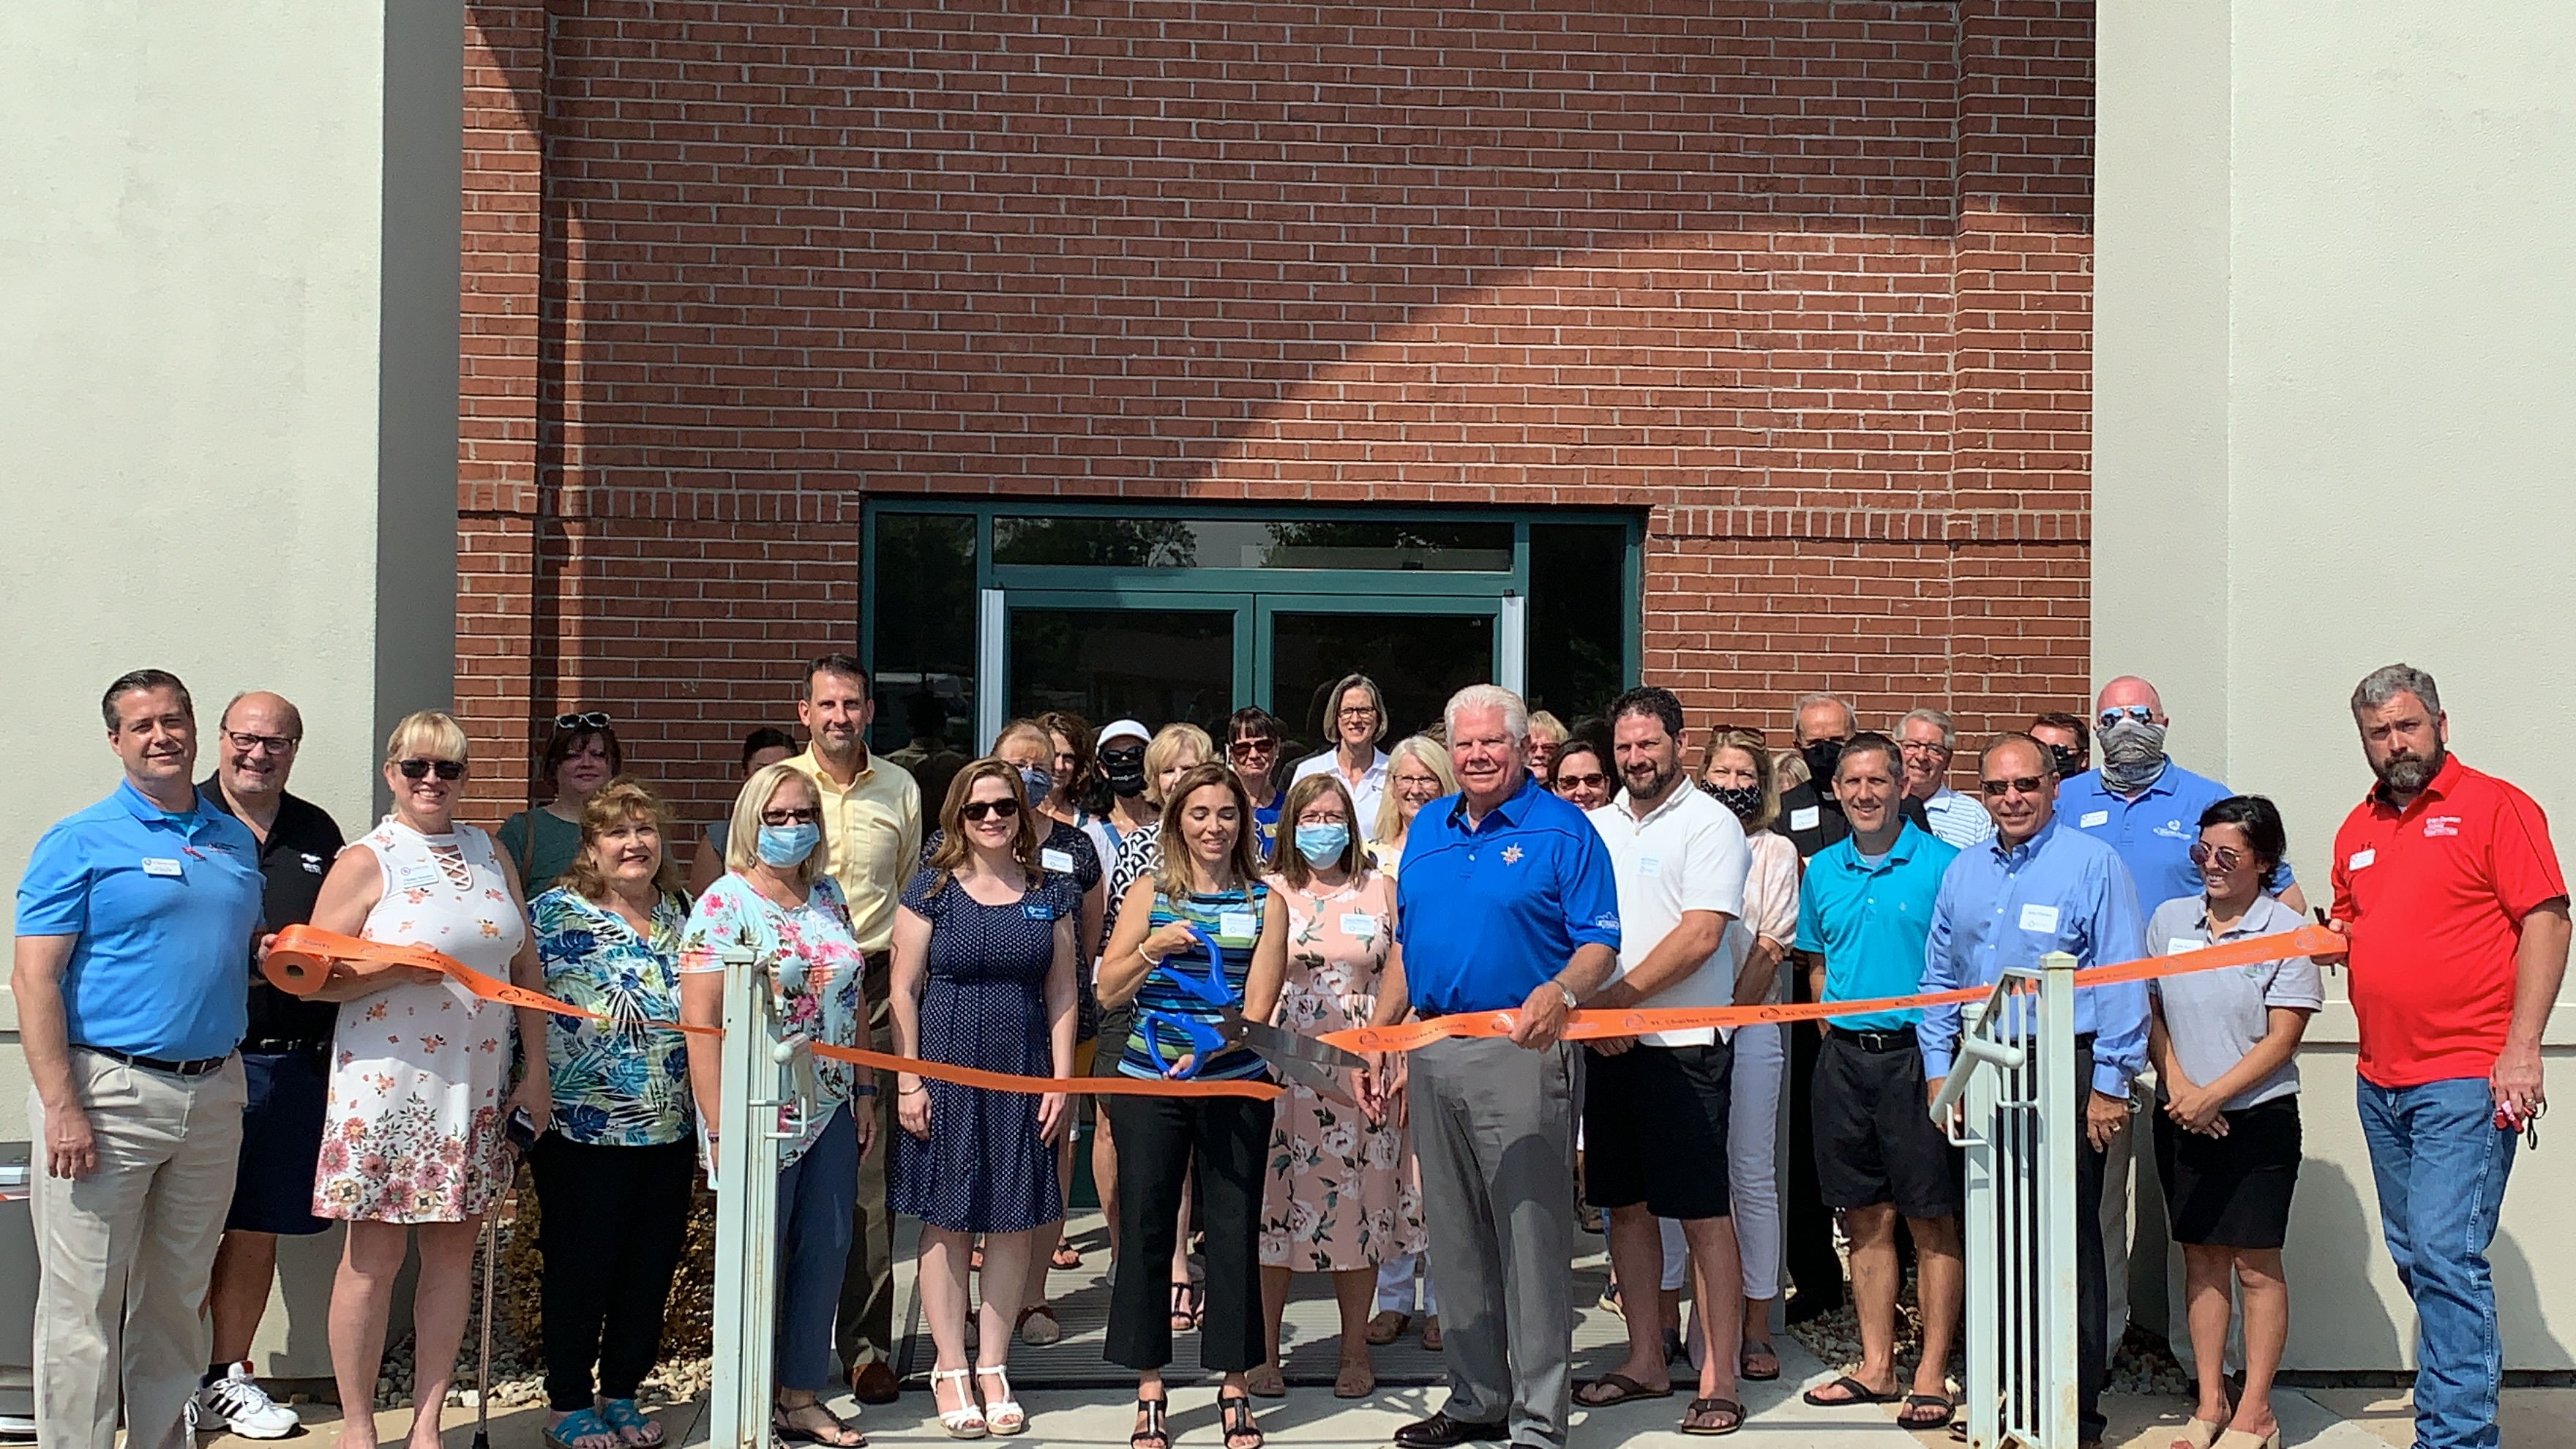 Image for Birthright of St. Charles Celebrates New Office with Ribbon Cutting